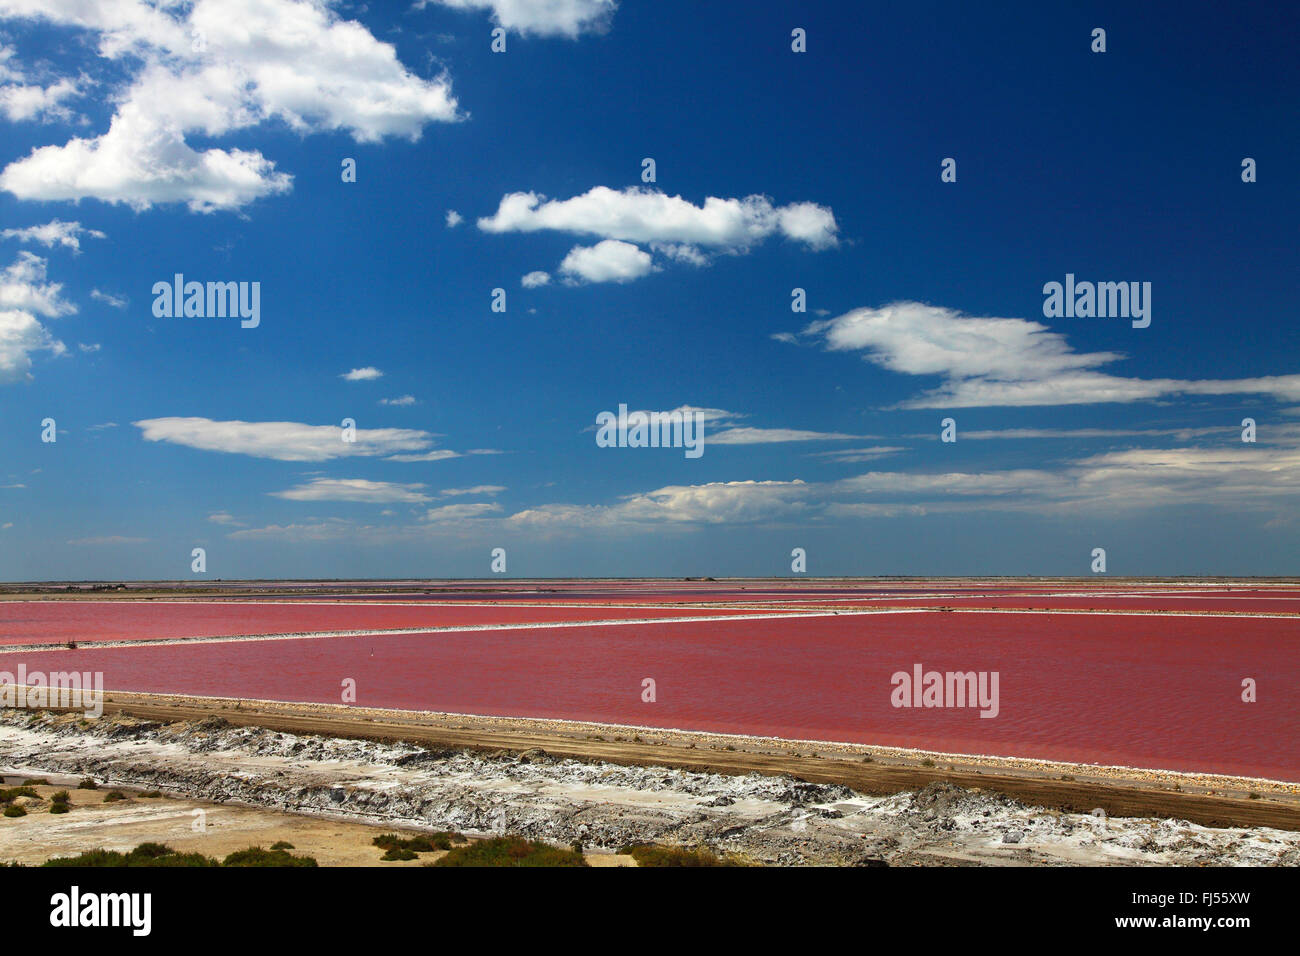 microorganisms change the colour to red of salt evaporation ponds of a saline near Salin de Giraud, France, Camargue - Stock Image